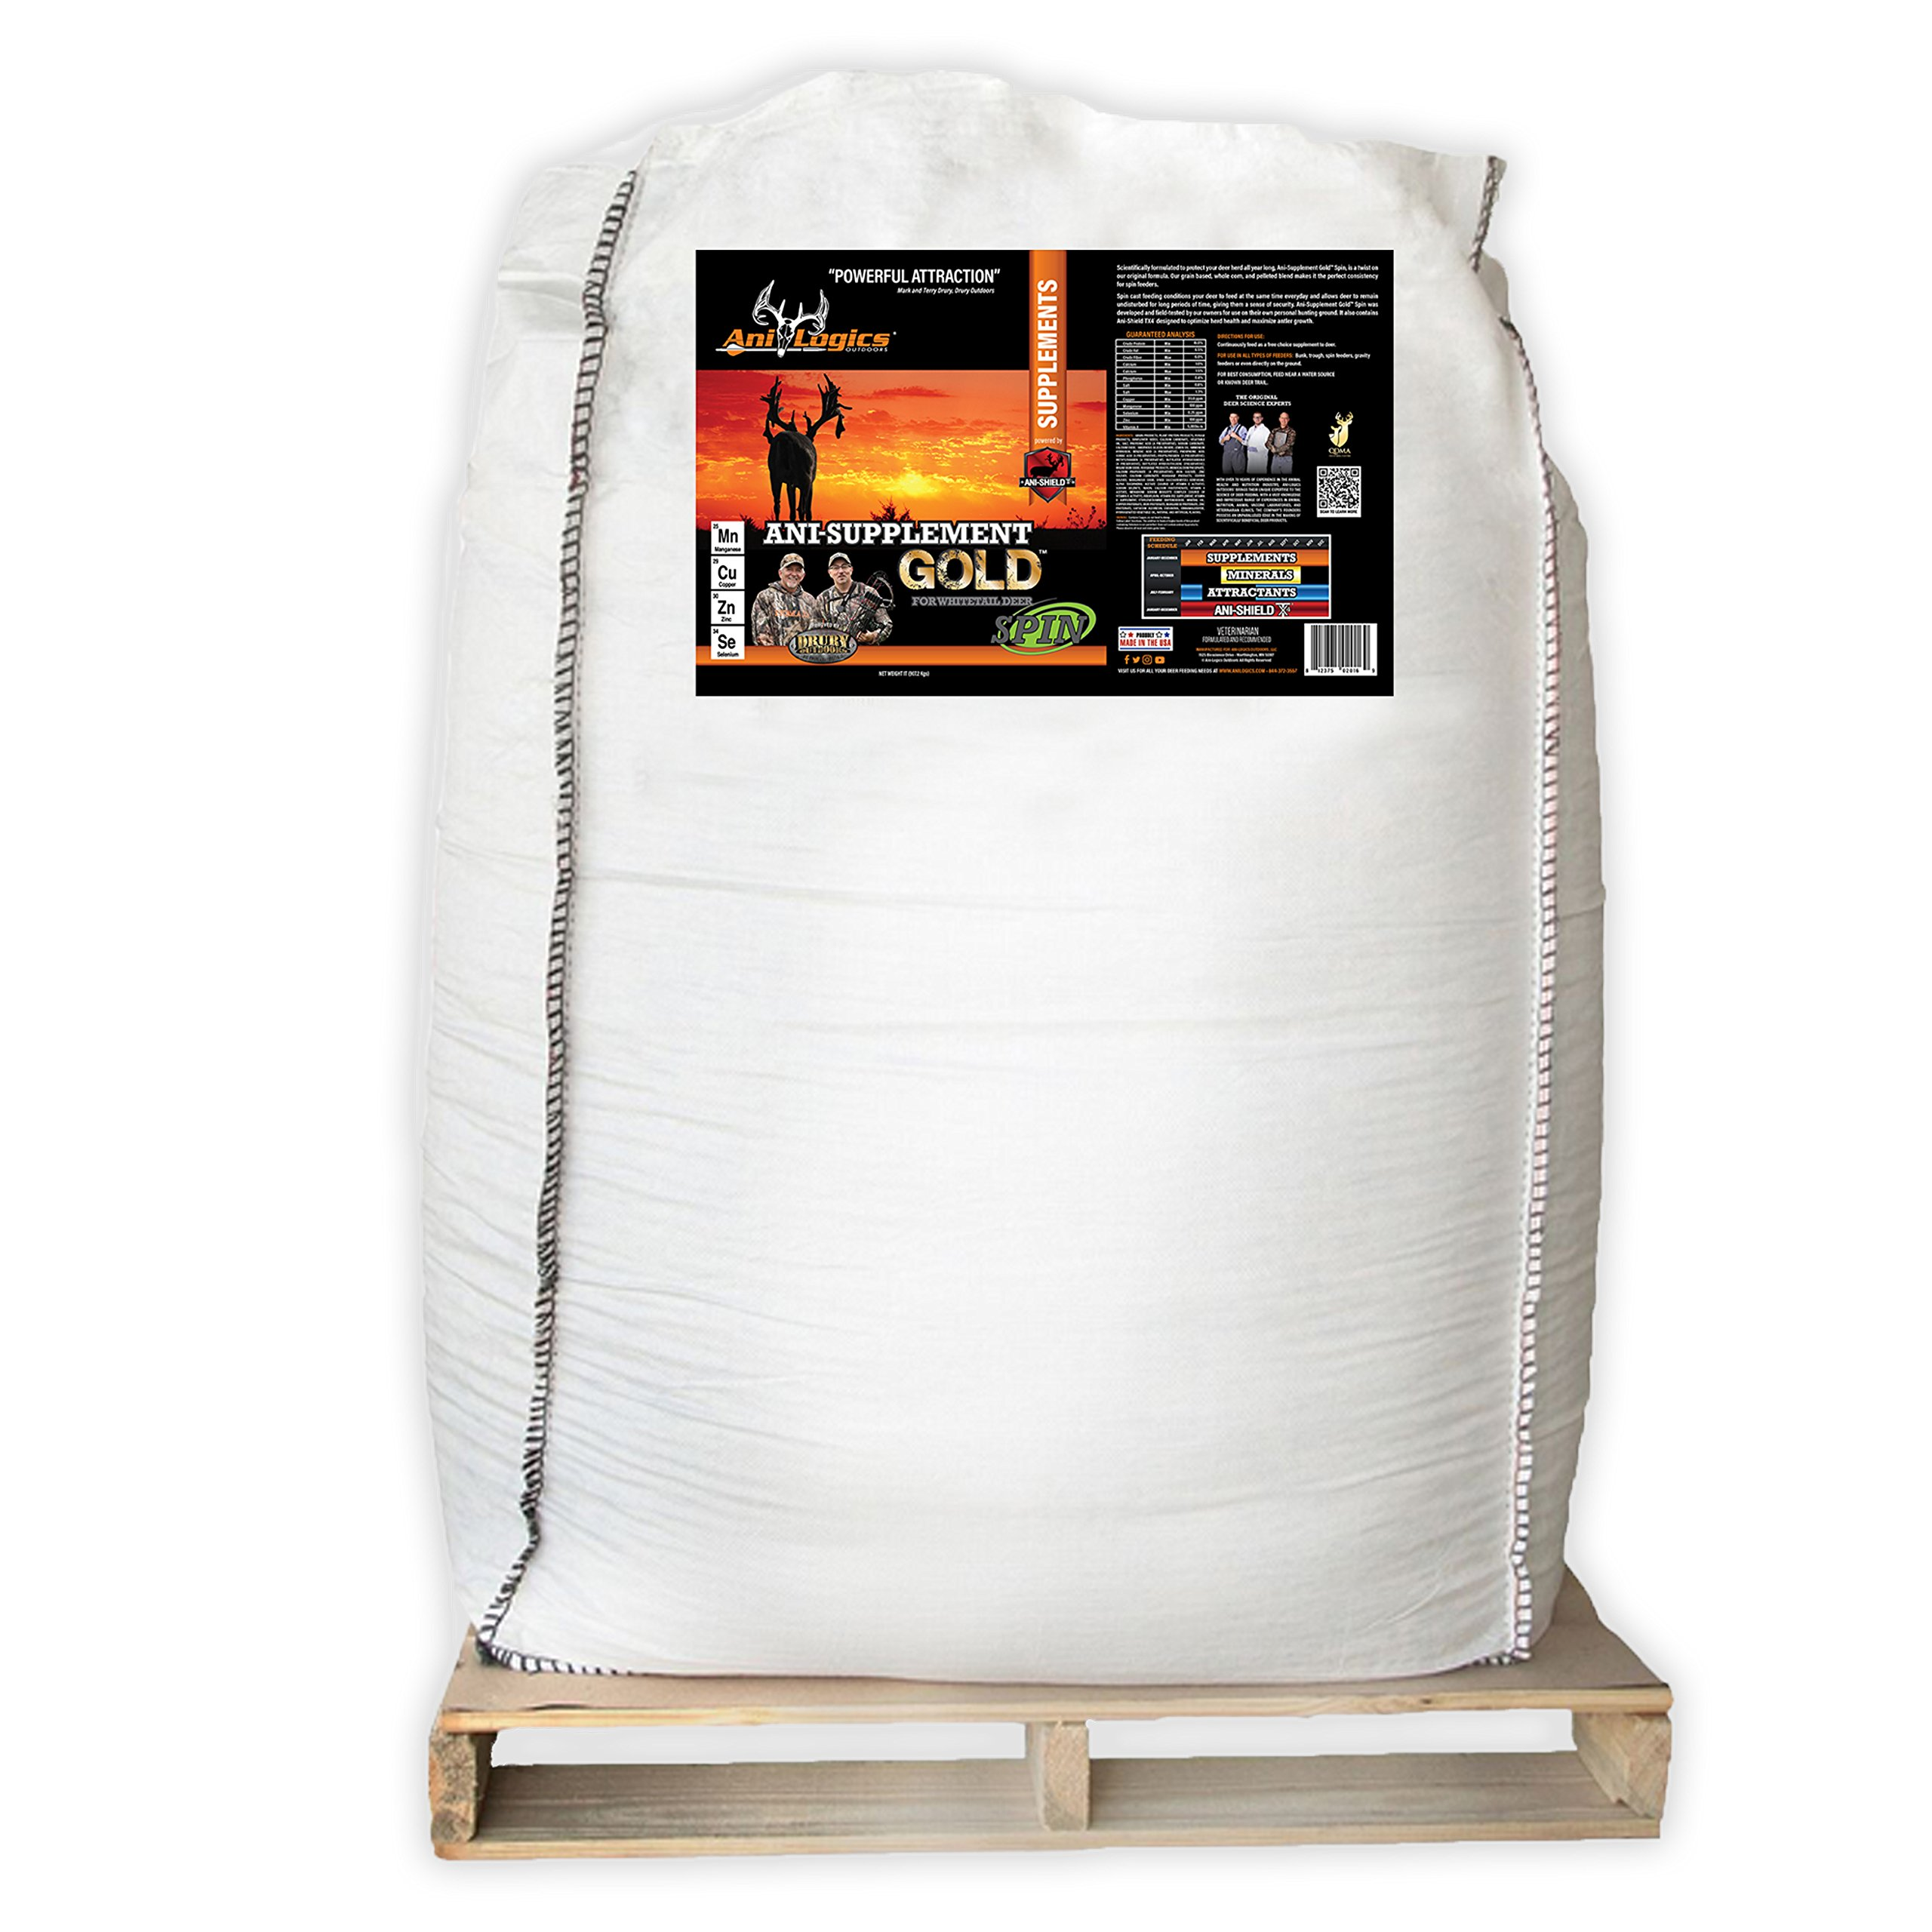 Ani-Logics Outdoors Ani-Supplement GOLD Spin 1 Ton Tote